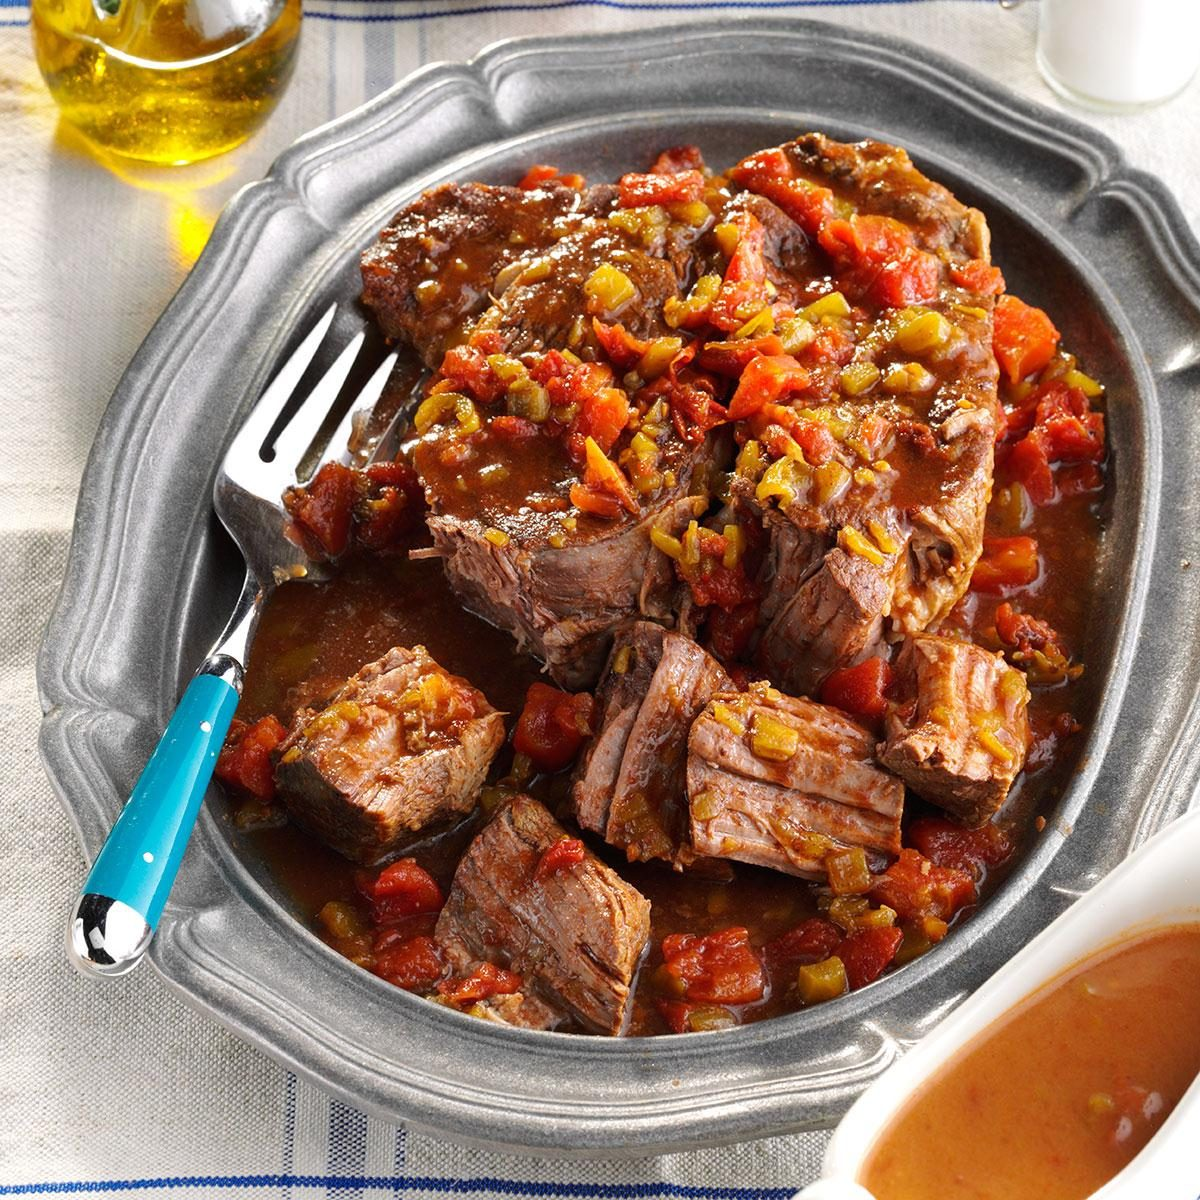 Http Www Tasteofhome Com Recipes Lone Star Pot Roast